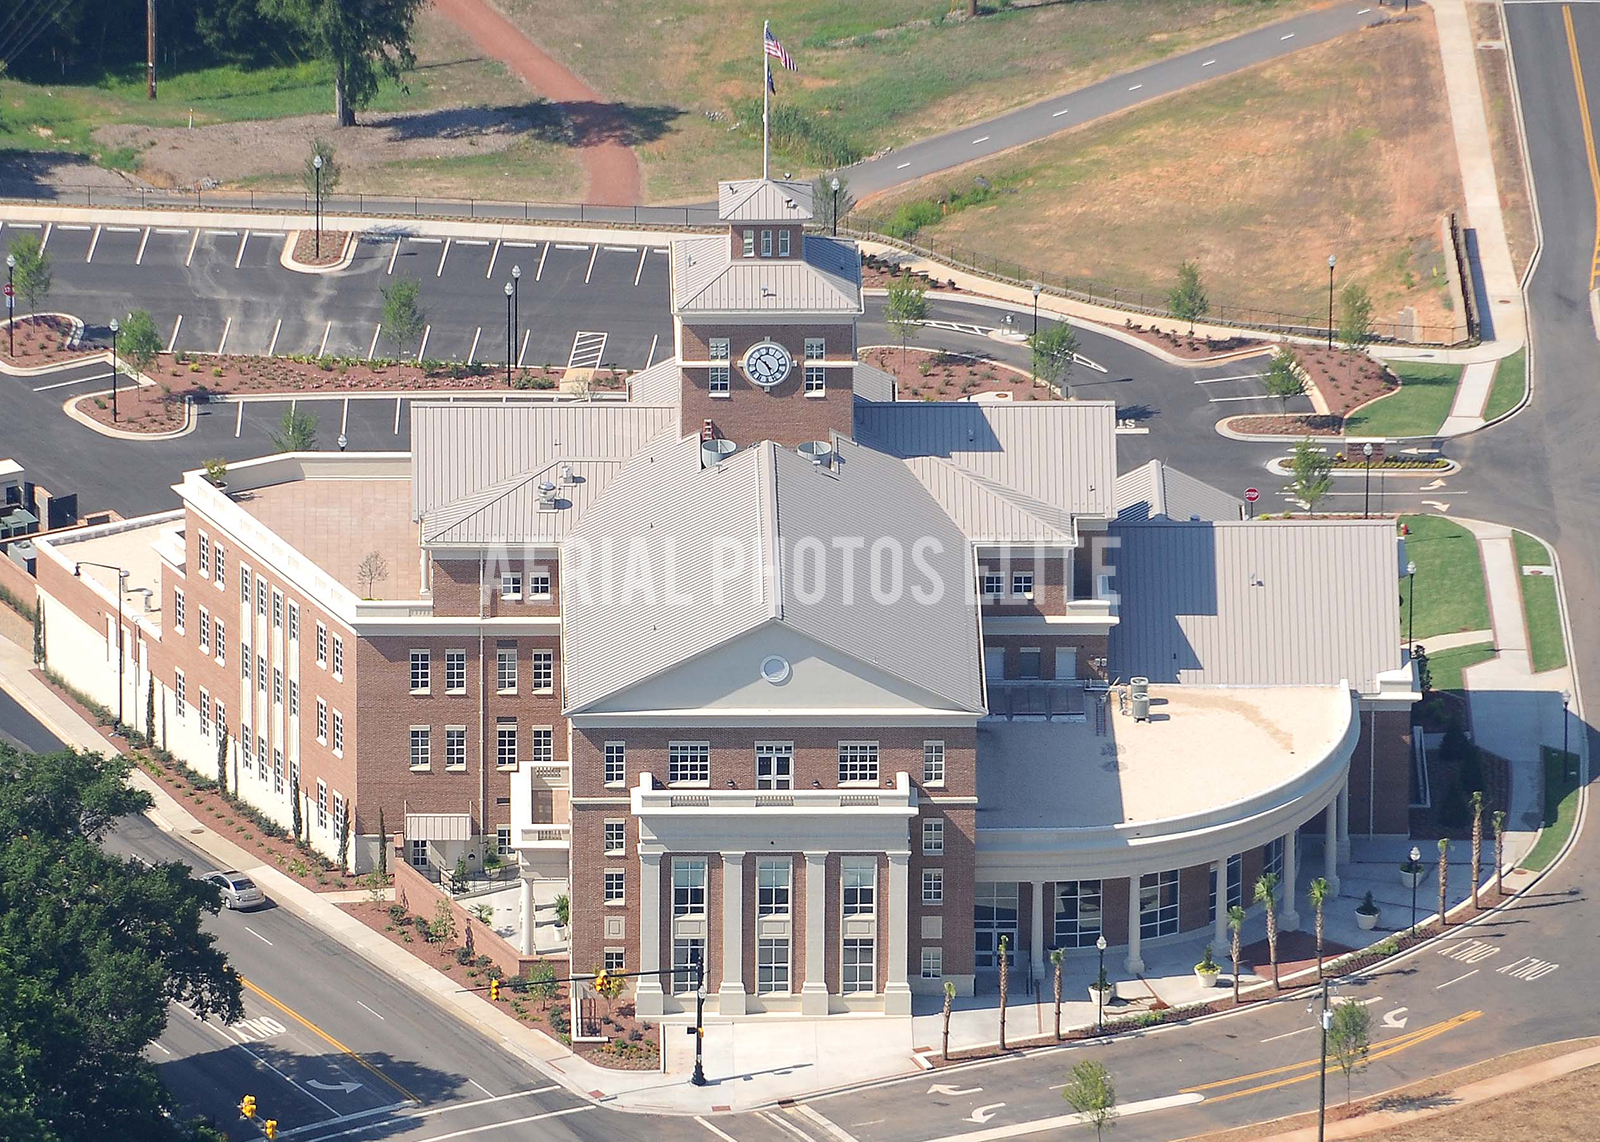 North Augusta SC Municipal Building | Aerial Photos Elite | Aerial Photos Elite